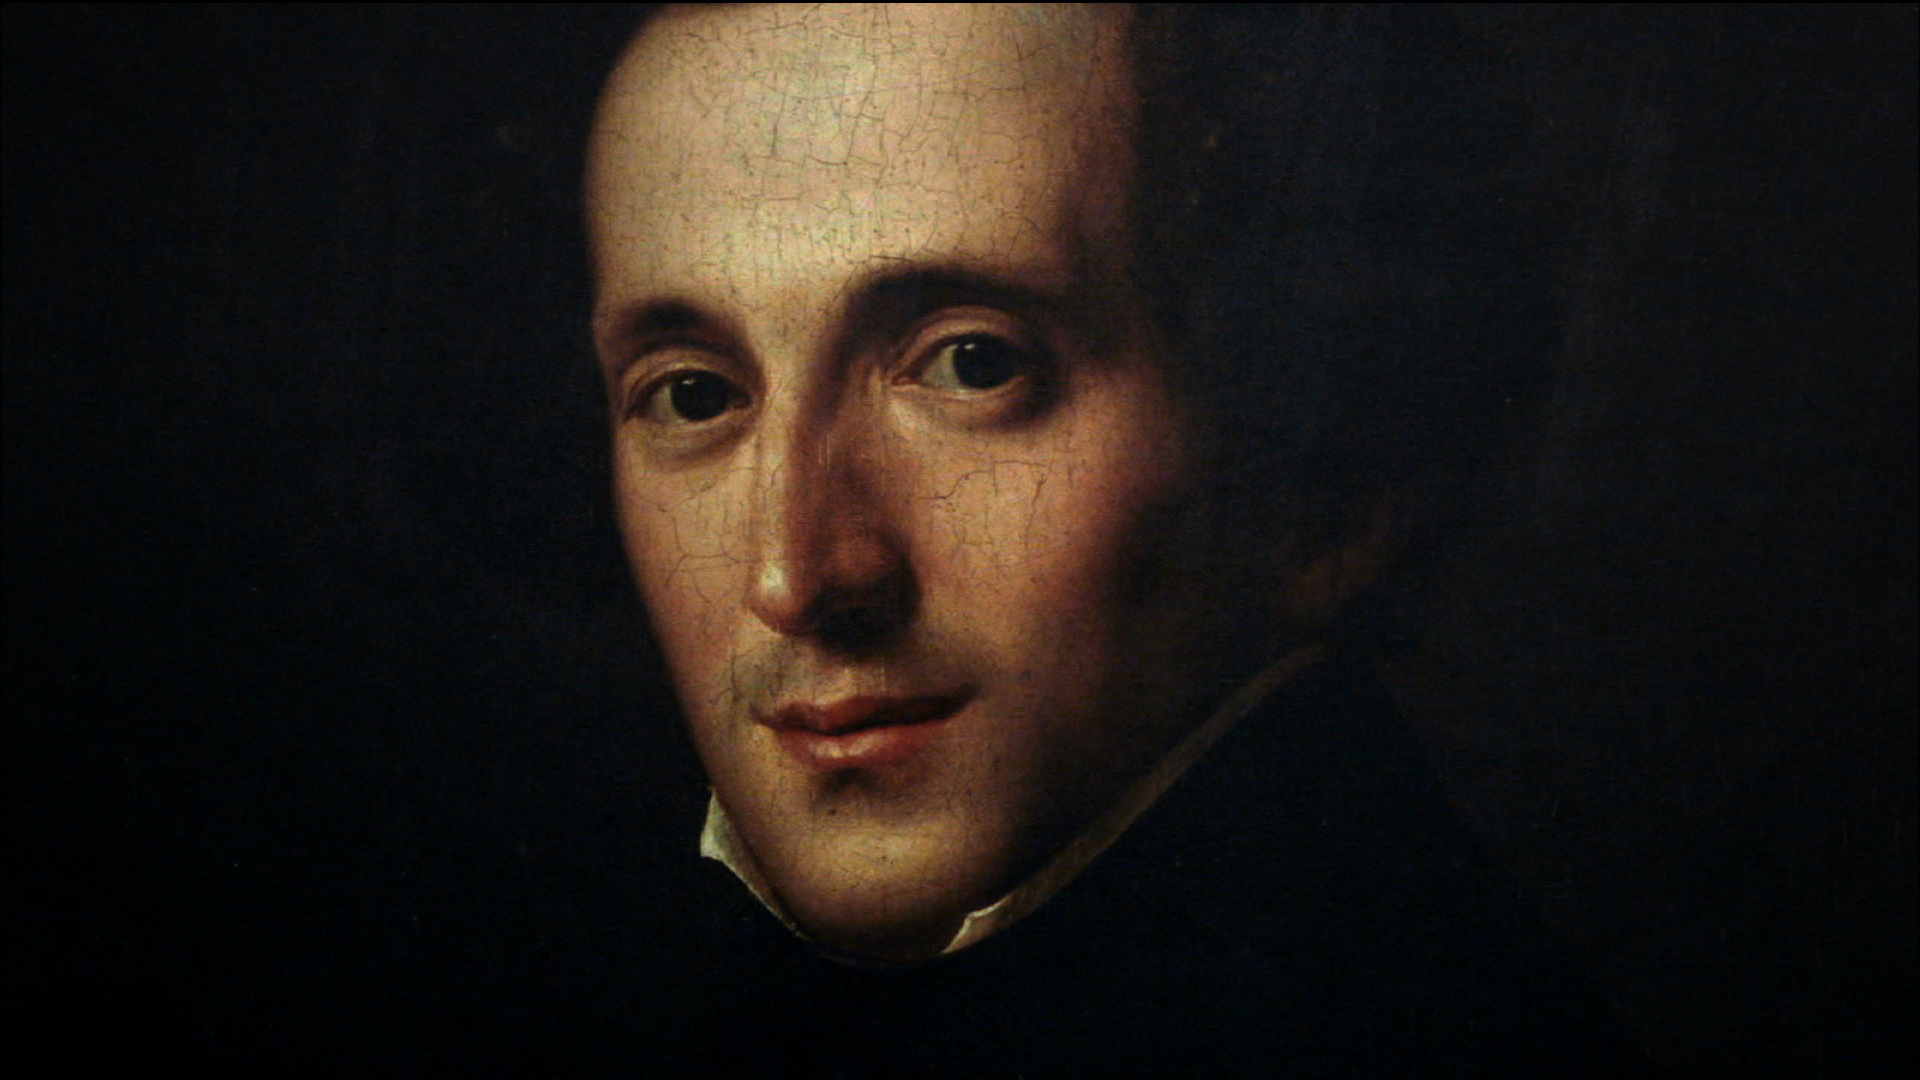 moses mendelssohn essay What were the ideals of the enlightenment, and how did moses mendelssohn embody them use evidence from the video and the background essay to support your answer.